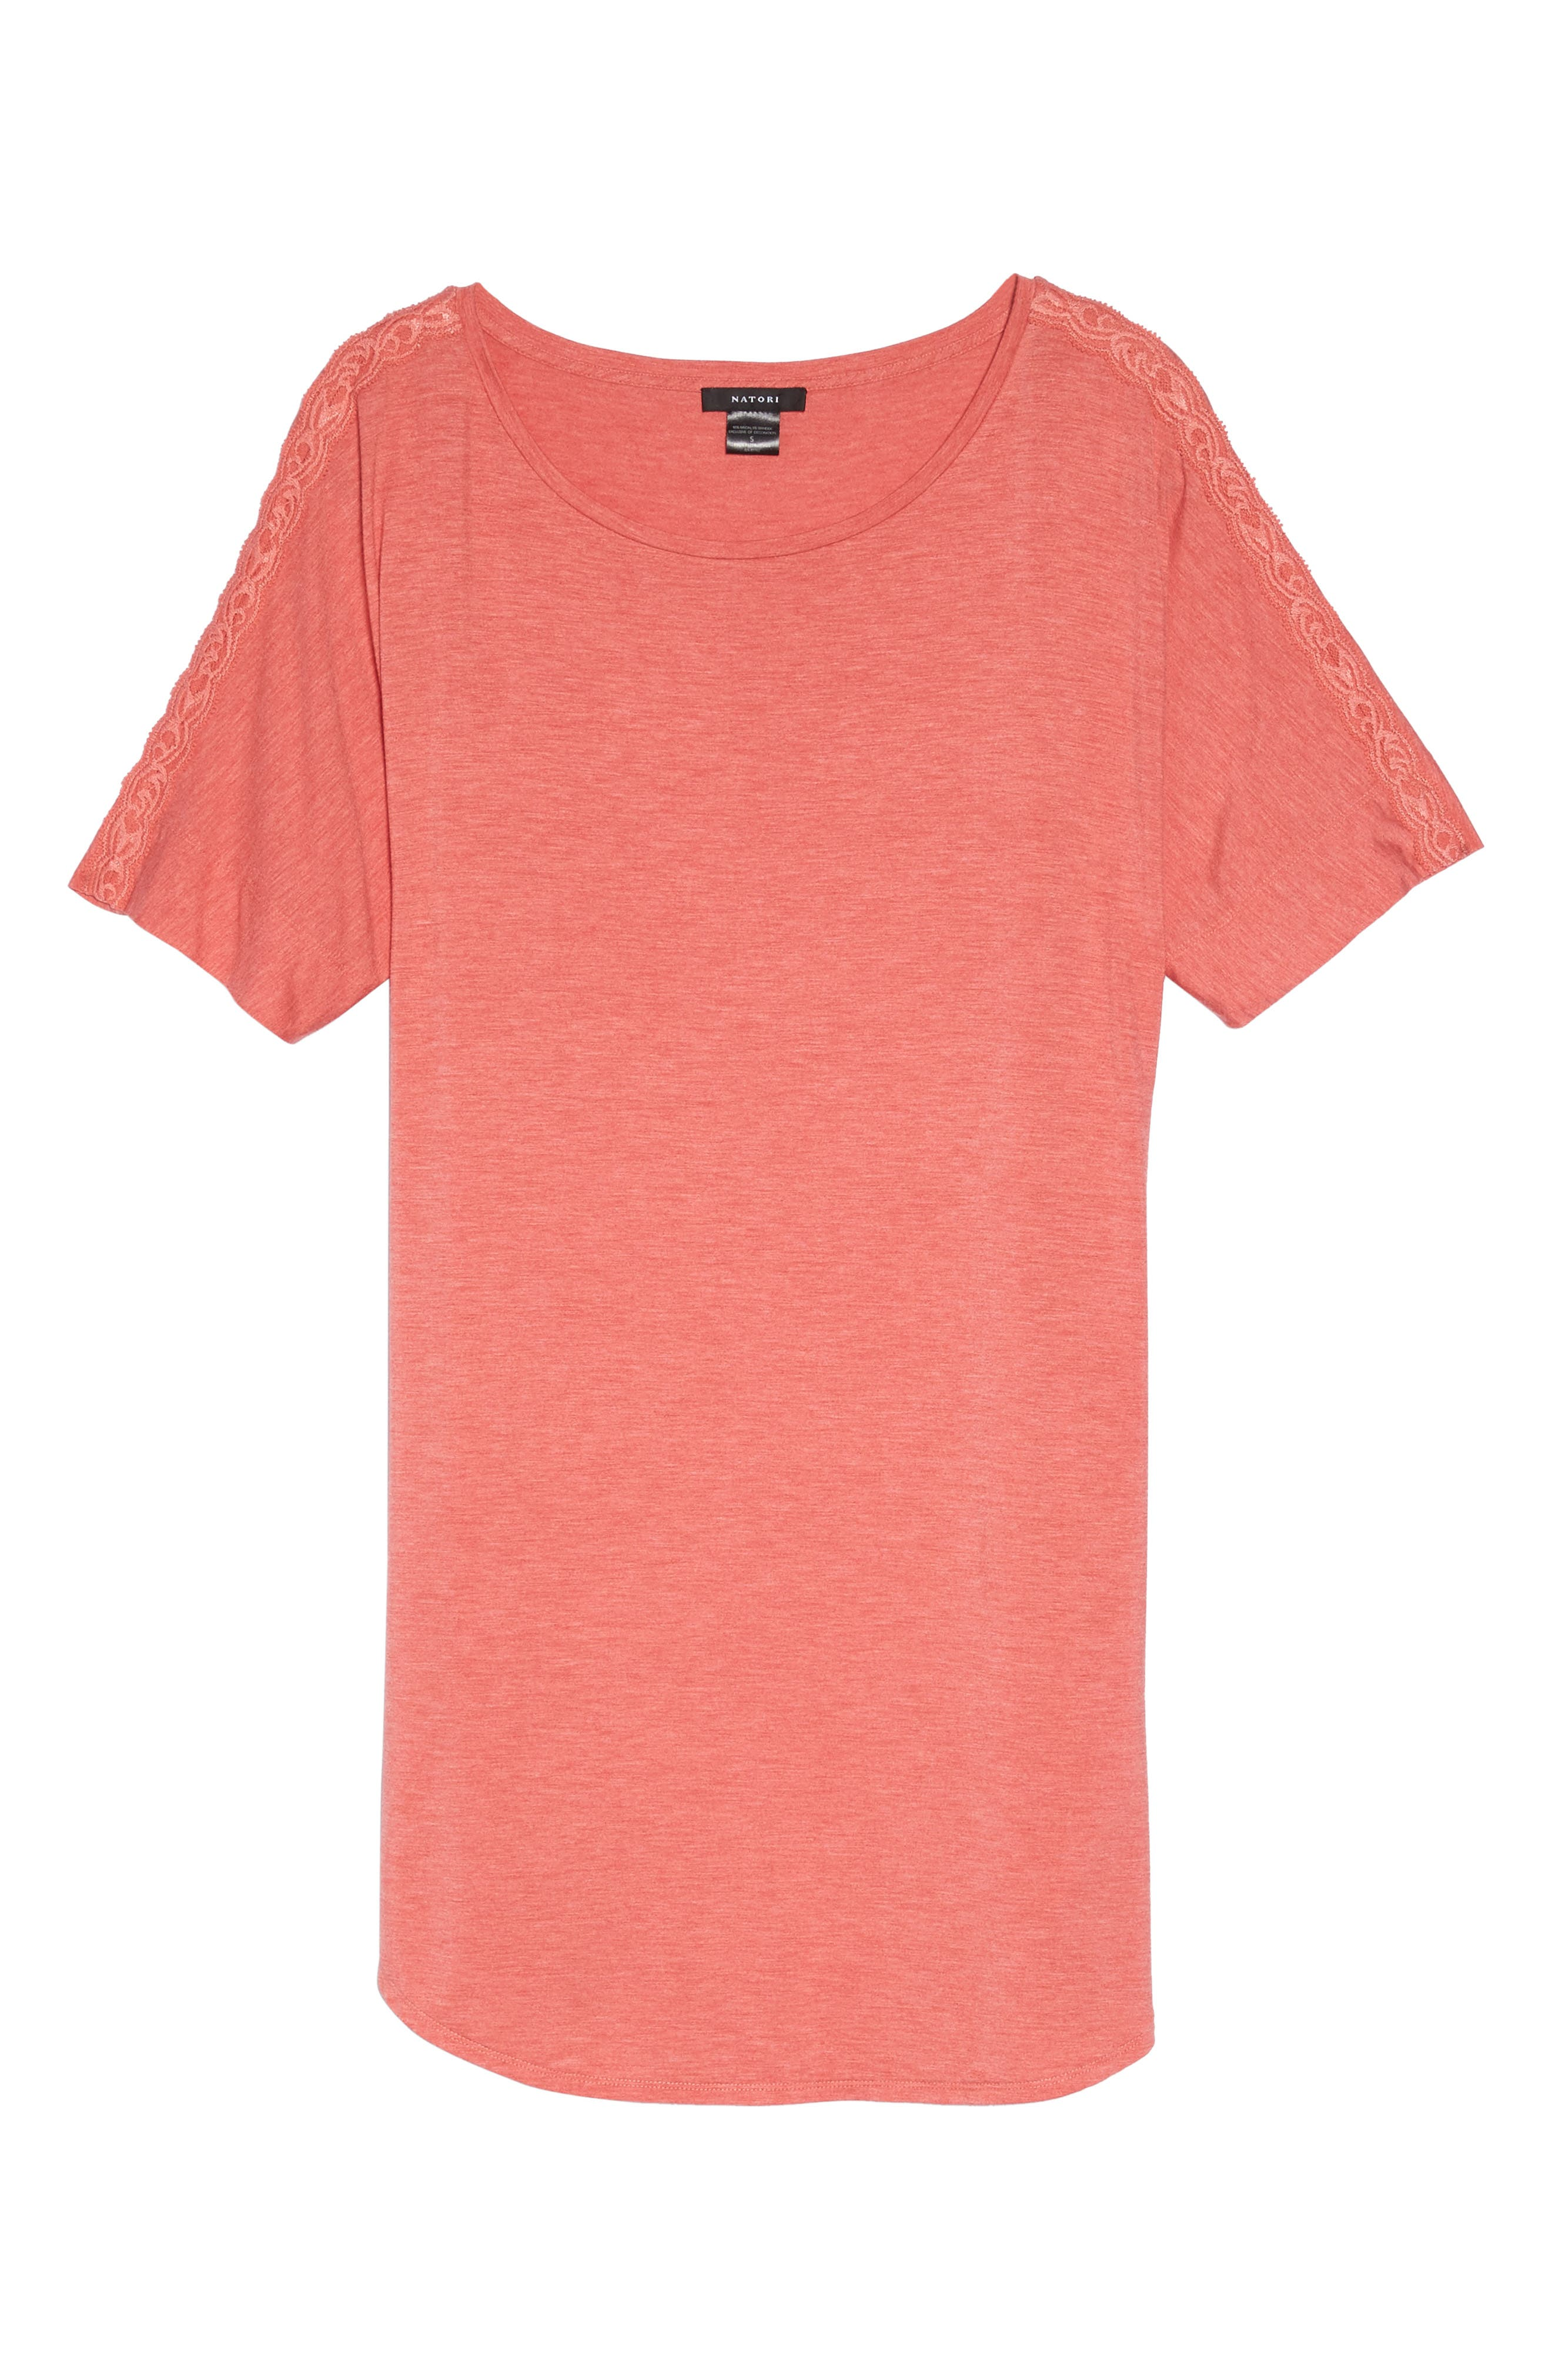 Feathers Essential Sleep Shirt,                             Alternate thumbnail 3, color,                             Coral